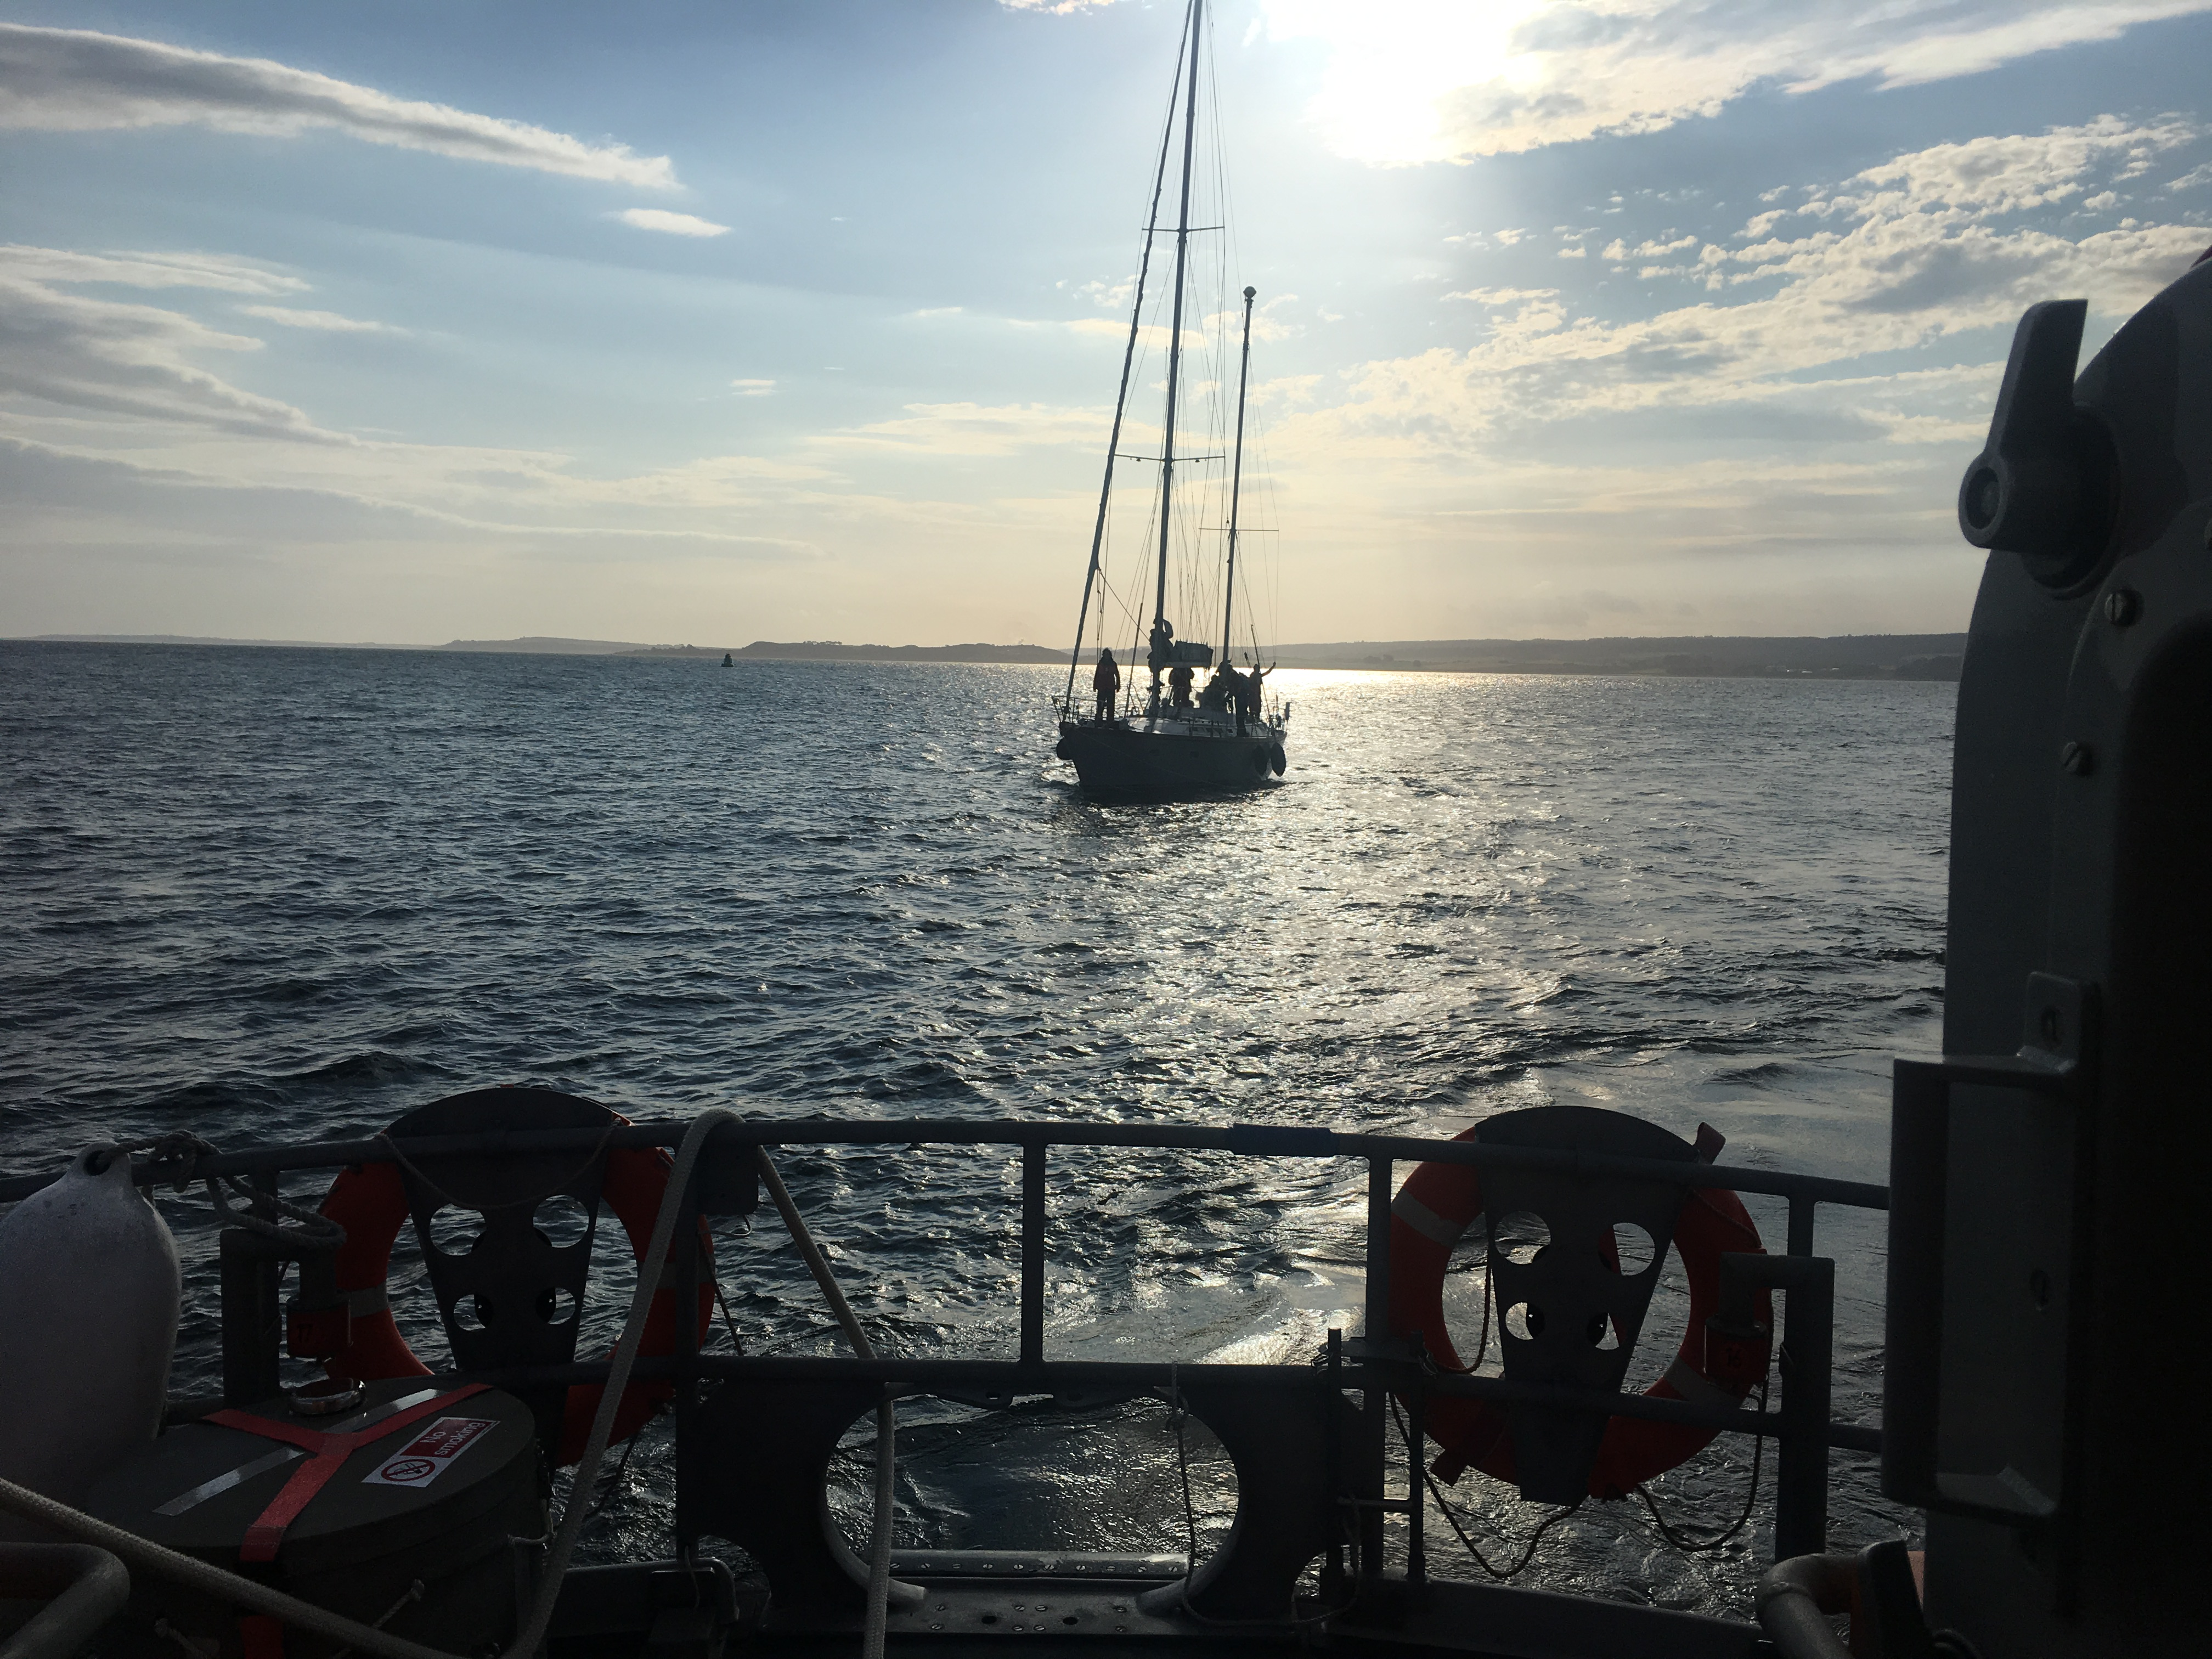 Invergordon Lifeboat with causality vessel under tow